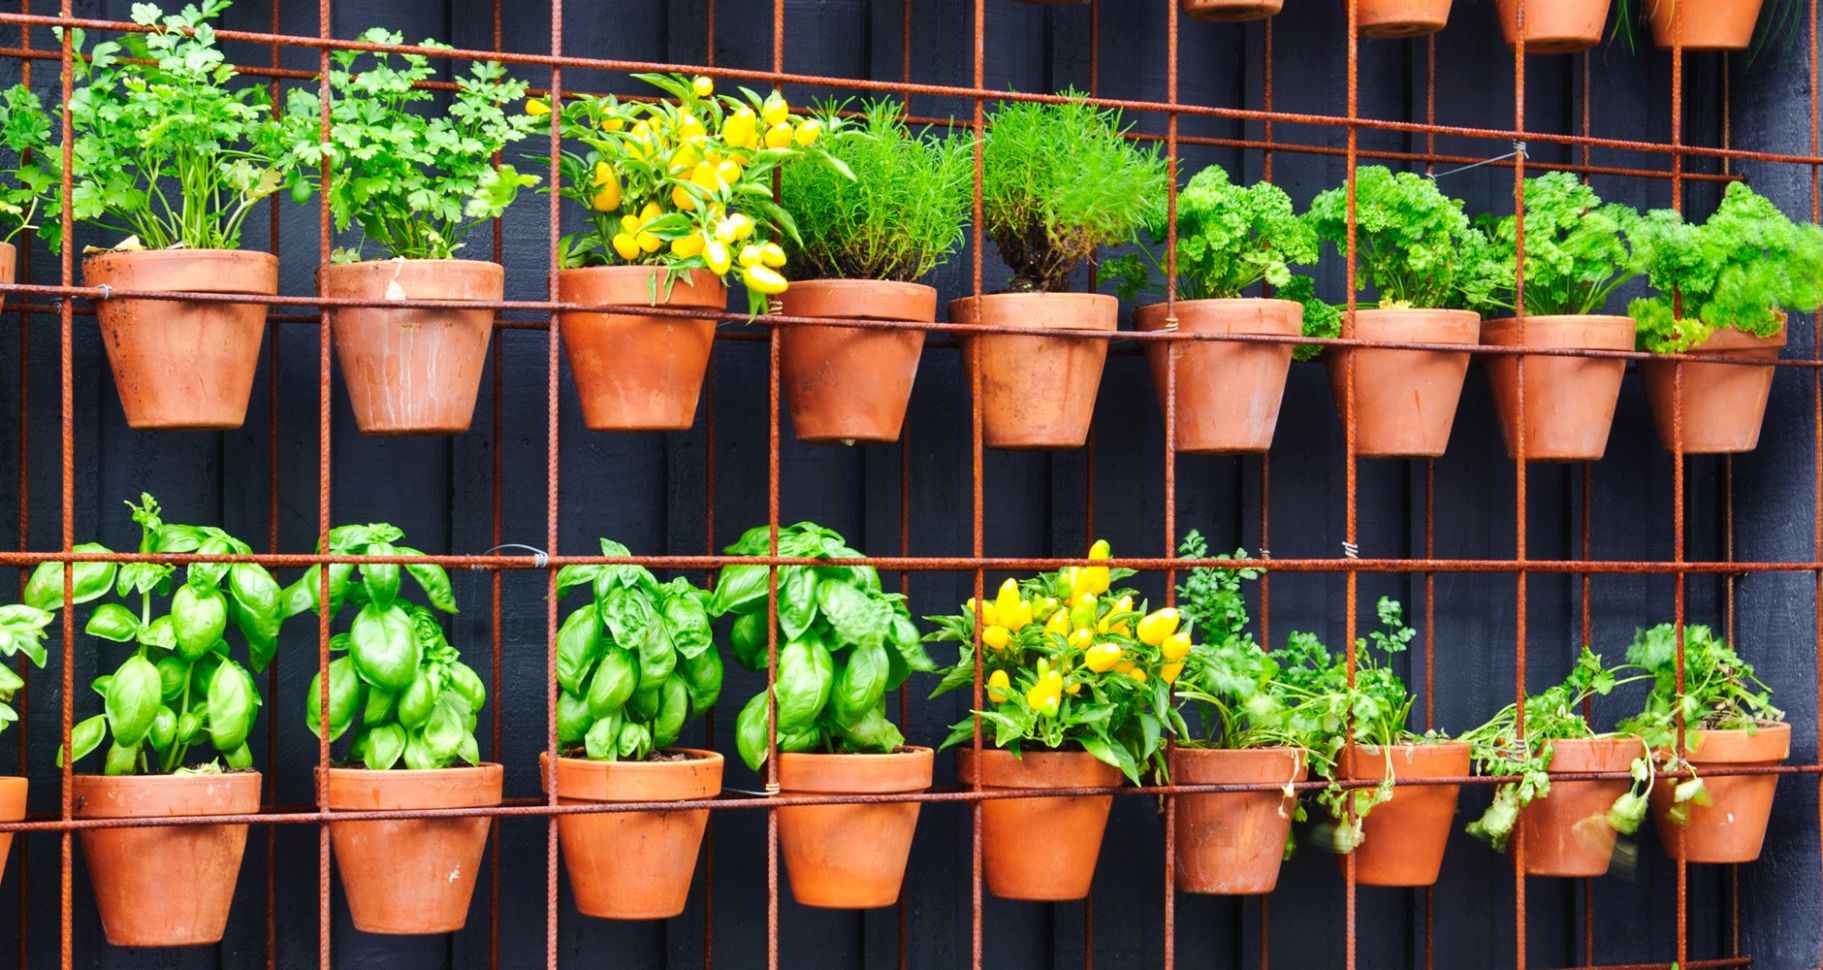 Big Gardening Ideas For Small Spaces - Farmers' Almanac